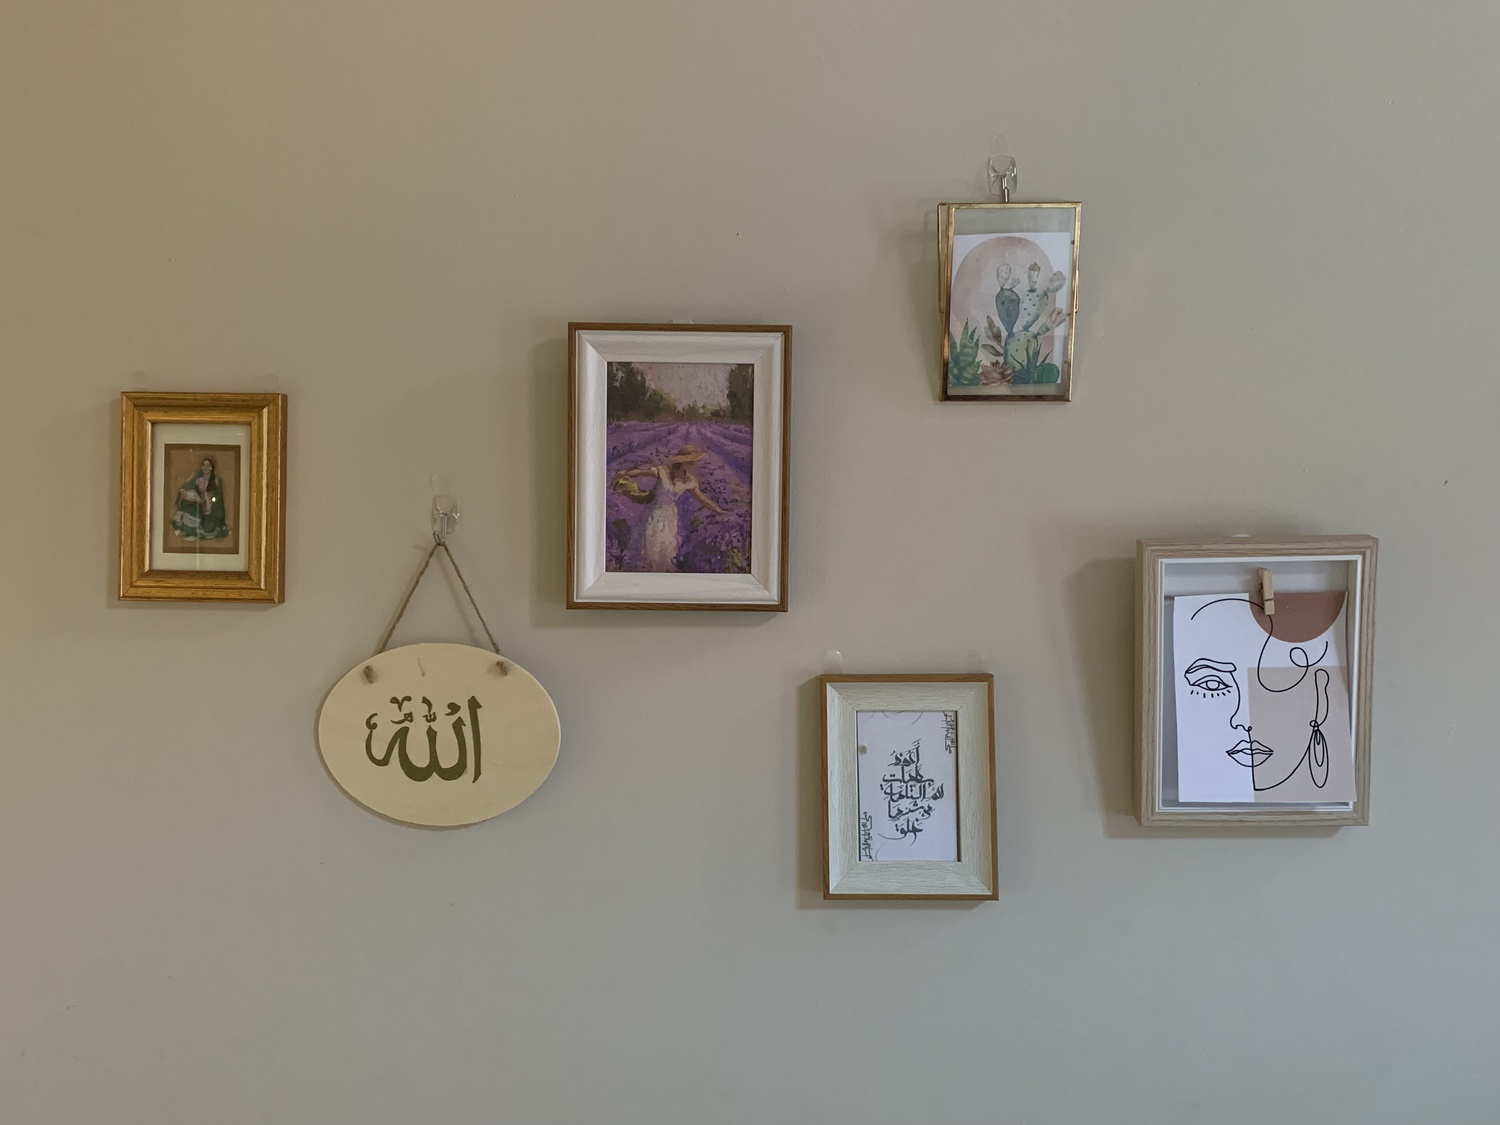 Some of our author's own room decor, carefully curated and placed.